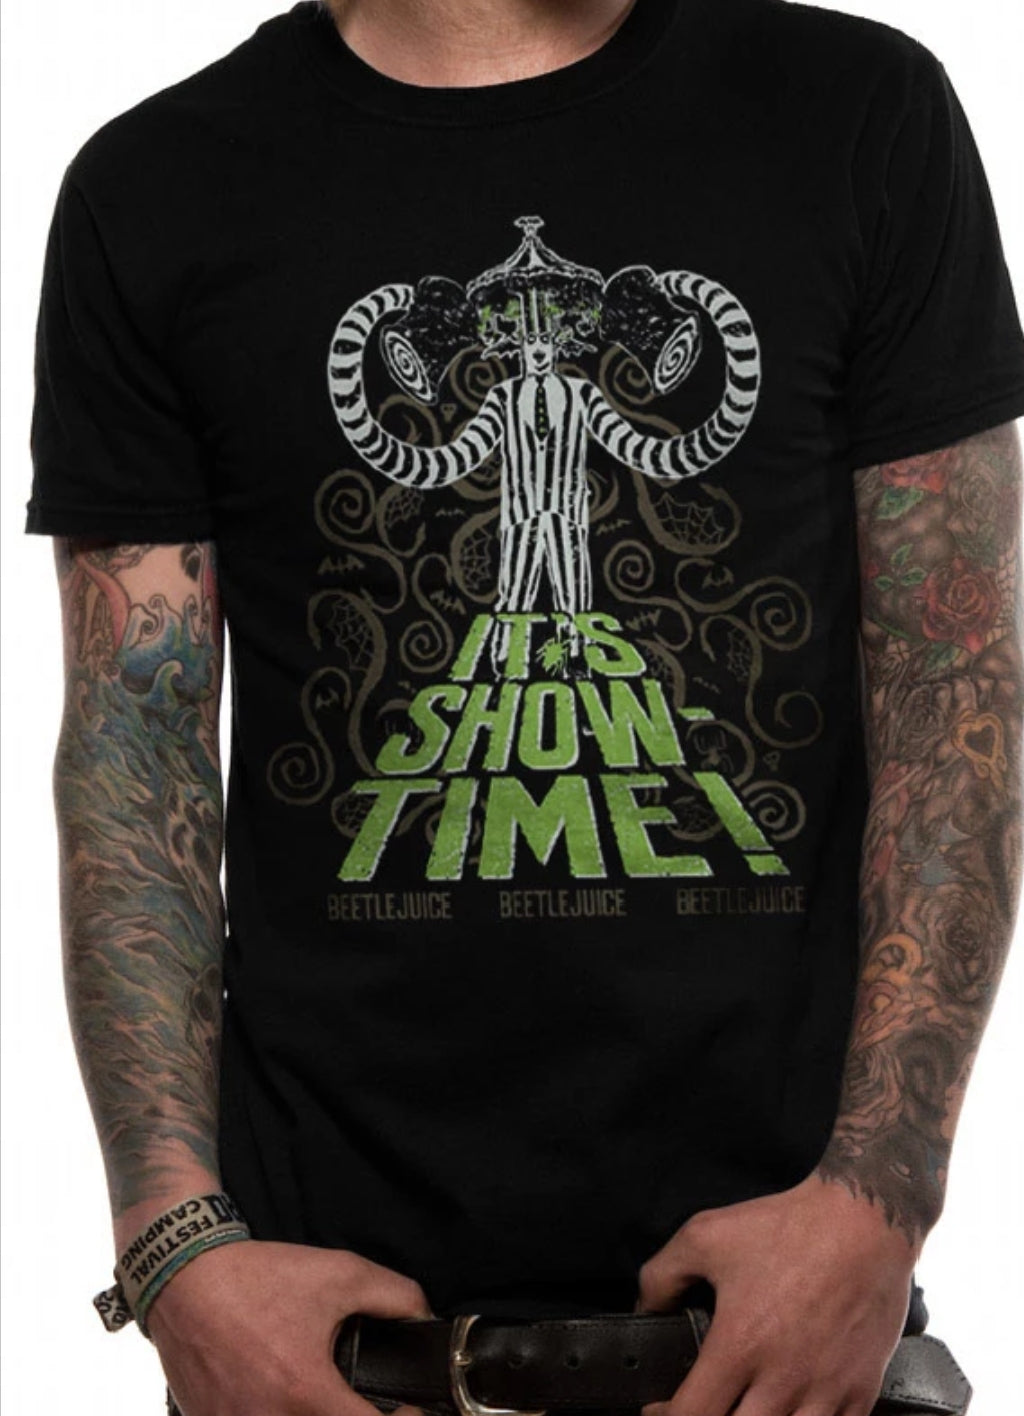 Beetlejuice (Showtime) Unisex T-Shirt